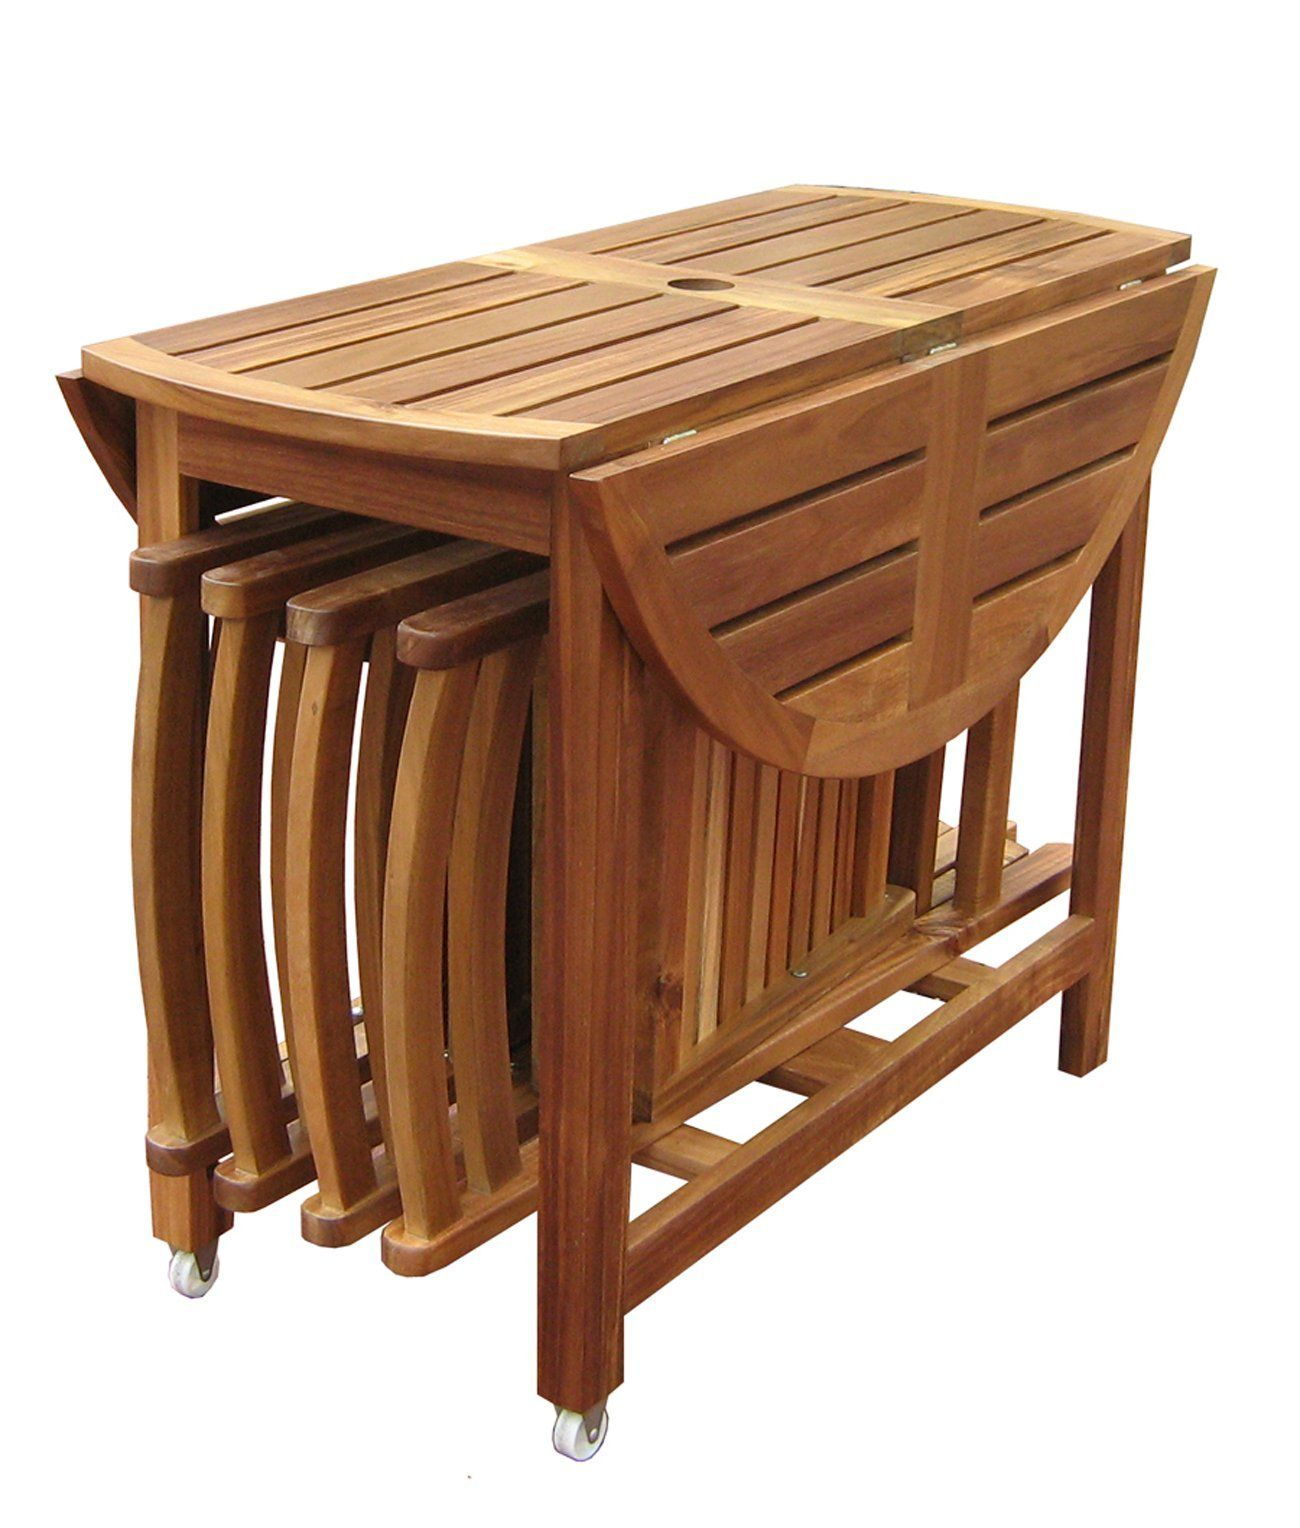 - Acacia Folding Table And Chair Set The Sides Of The Acacia Table